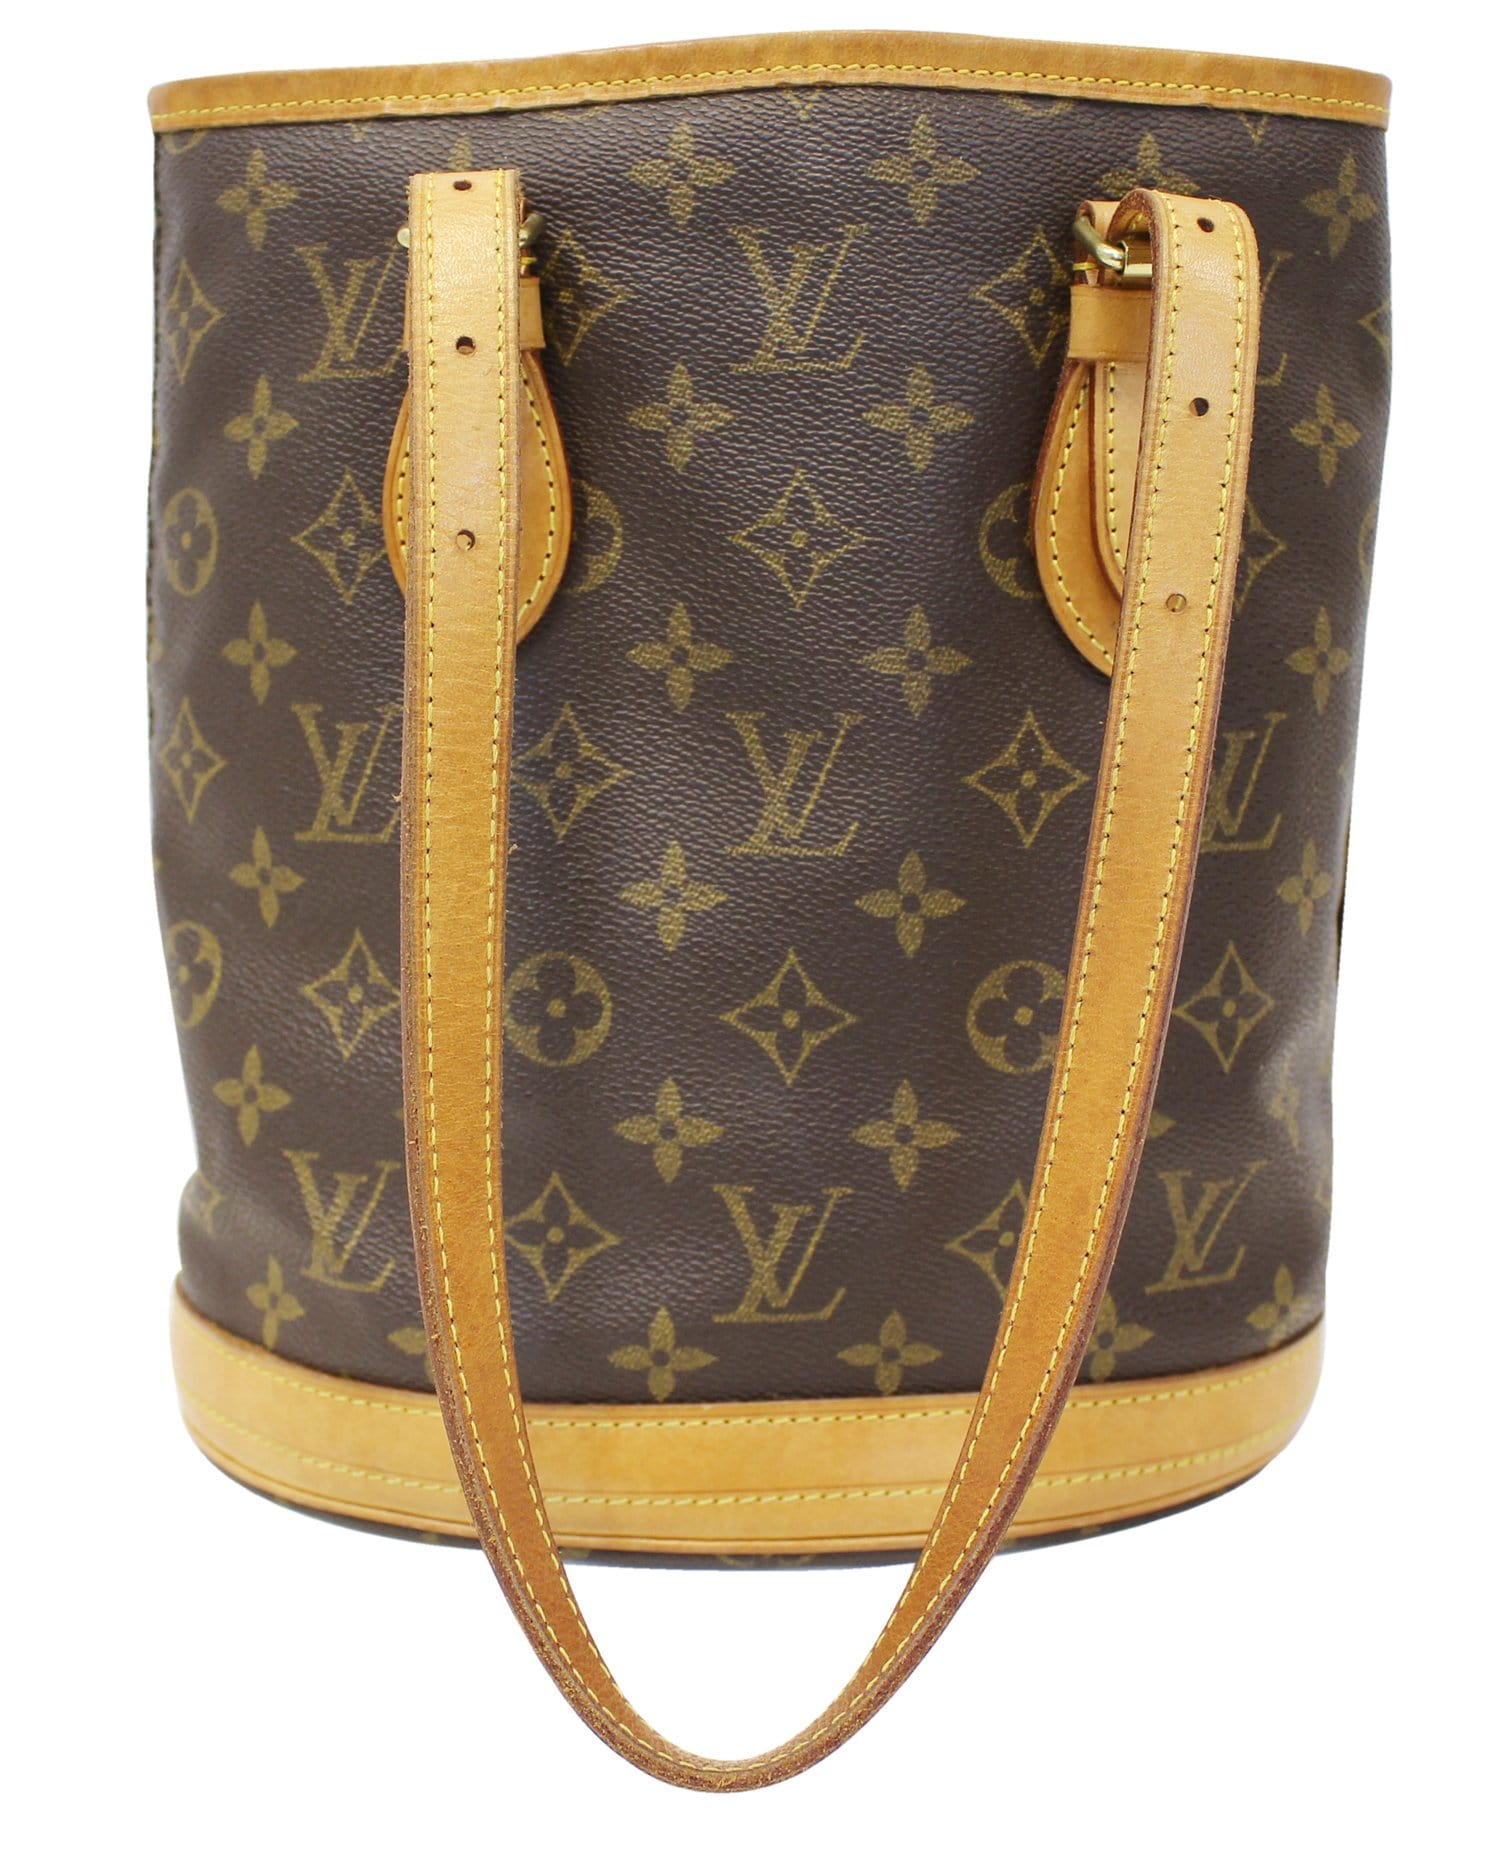 fef282cdd197 LOUIS VUITTON Bucket PM Monogram Canvas Shoulder Bag